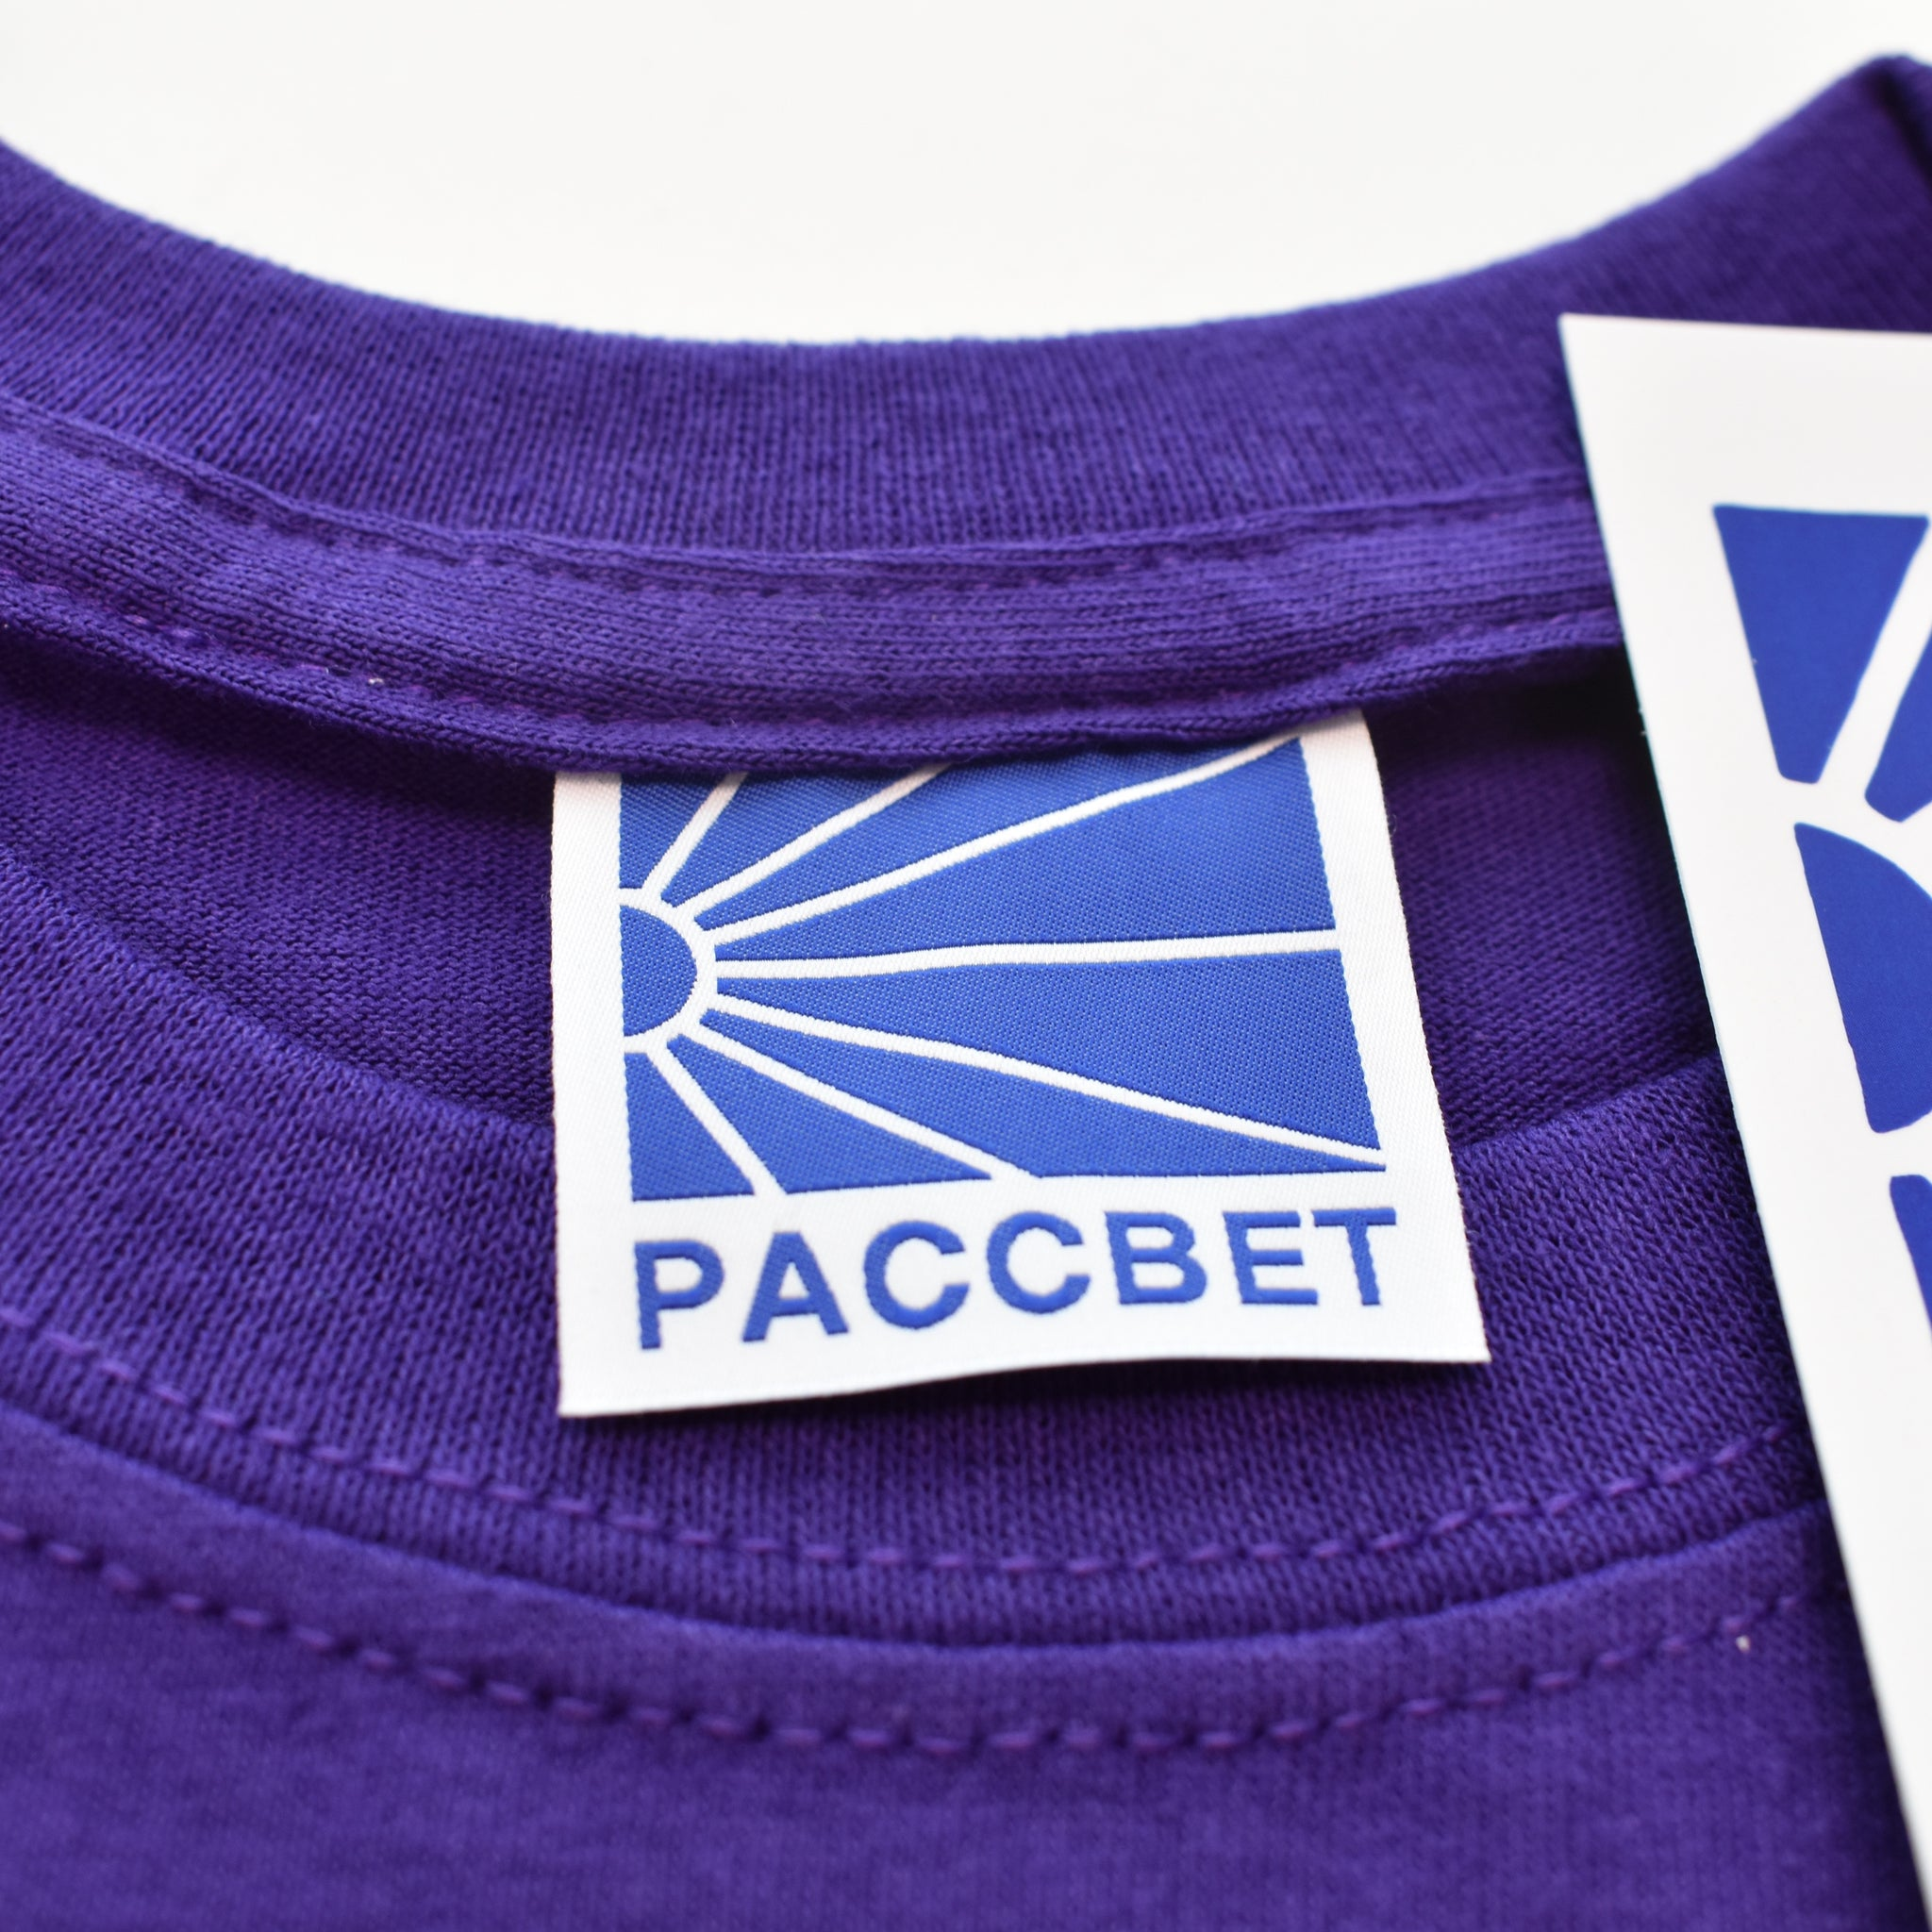 Gosha Rubchinskiy - Purple PACCBET Photo T-Shirt